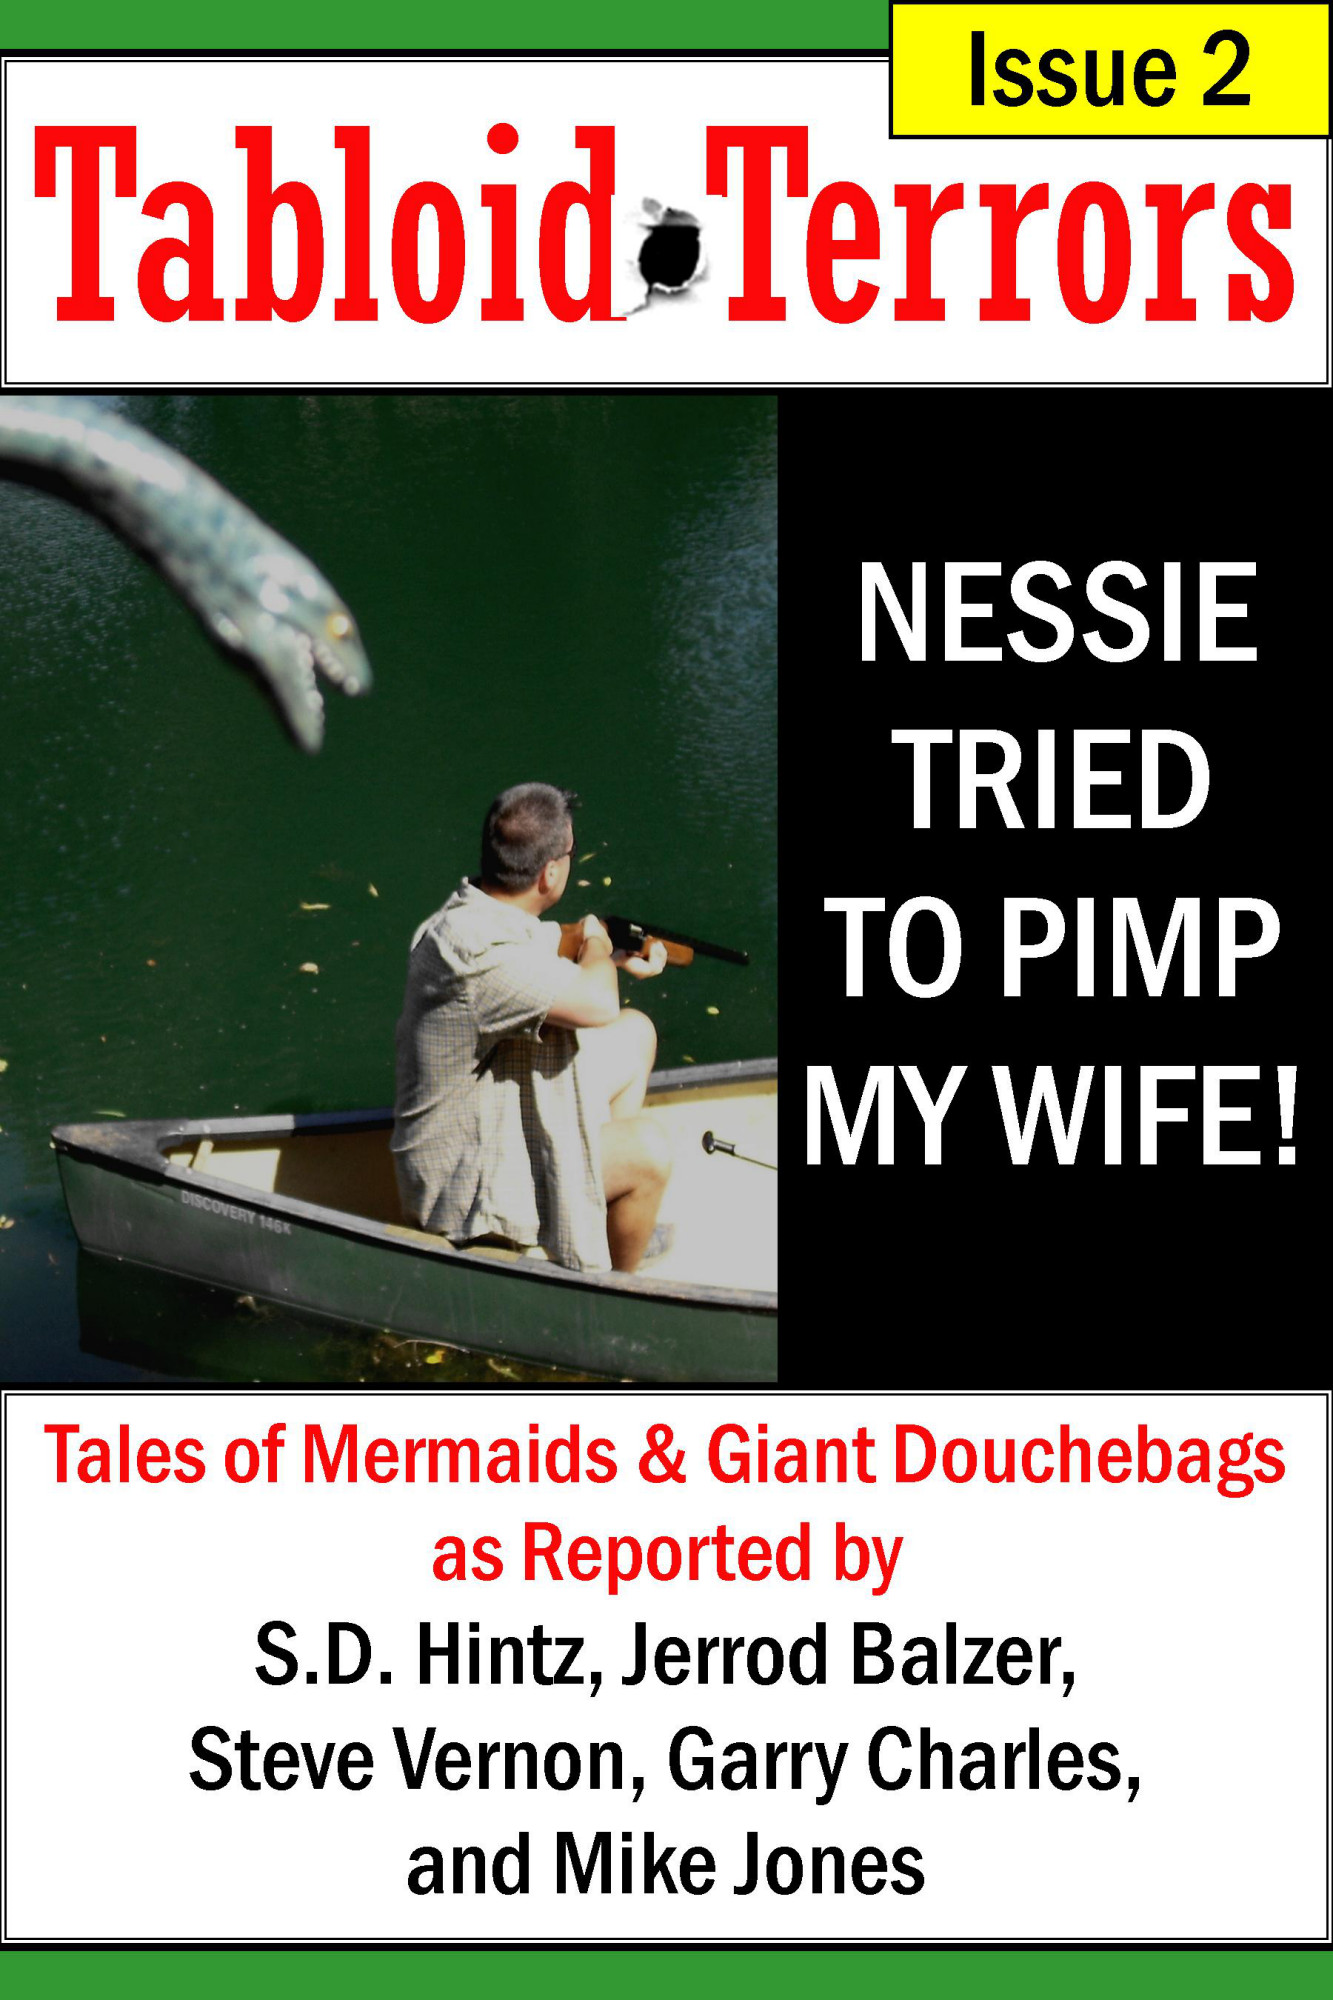 Tabloid Terrors 2: Nessie Tried to Pimp My Wife